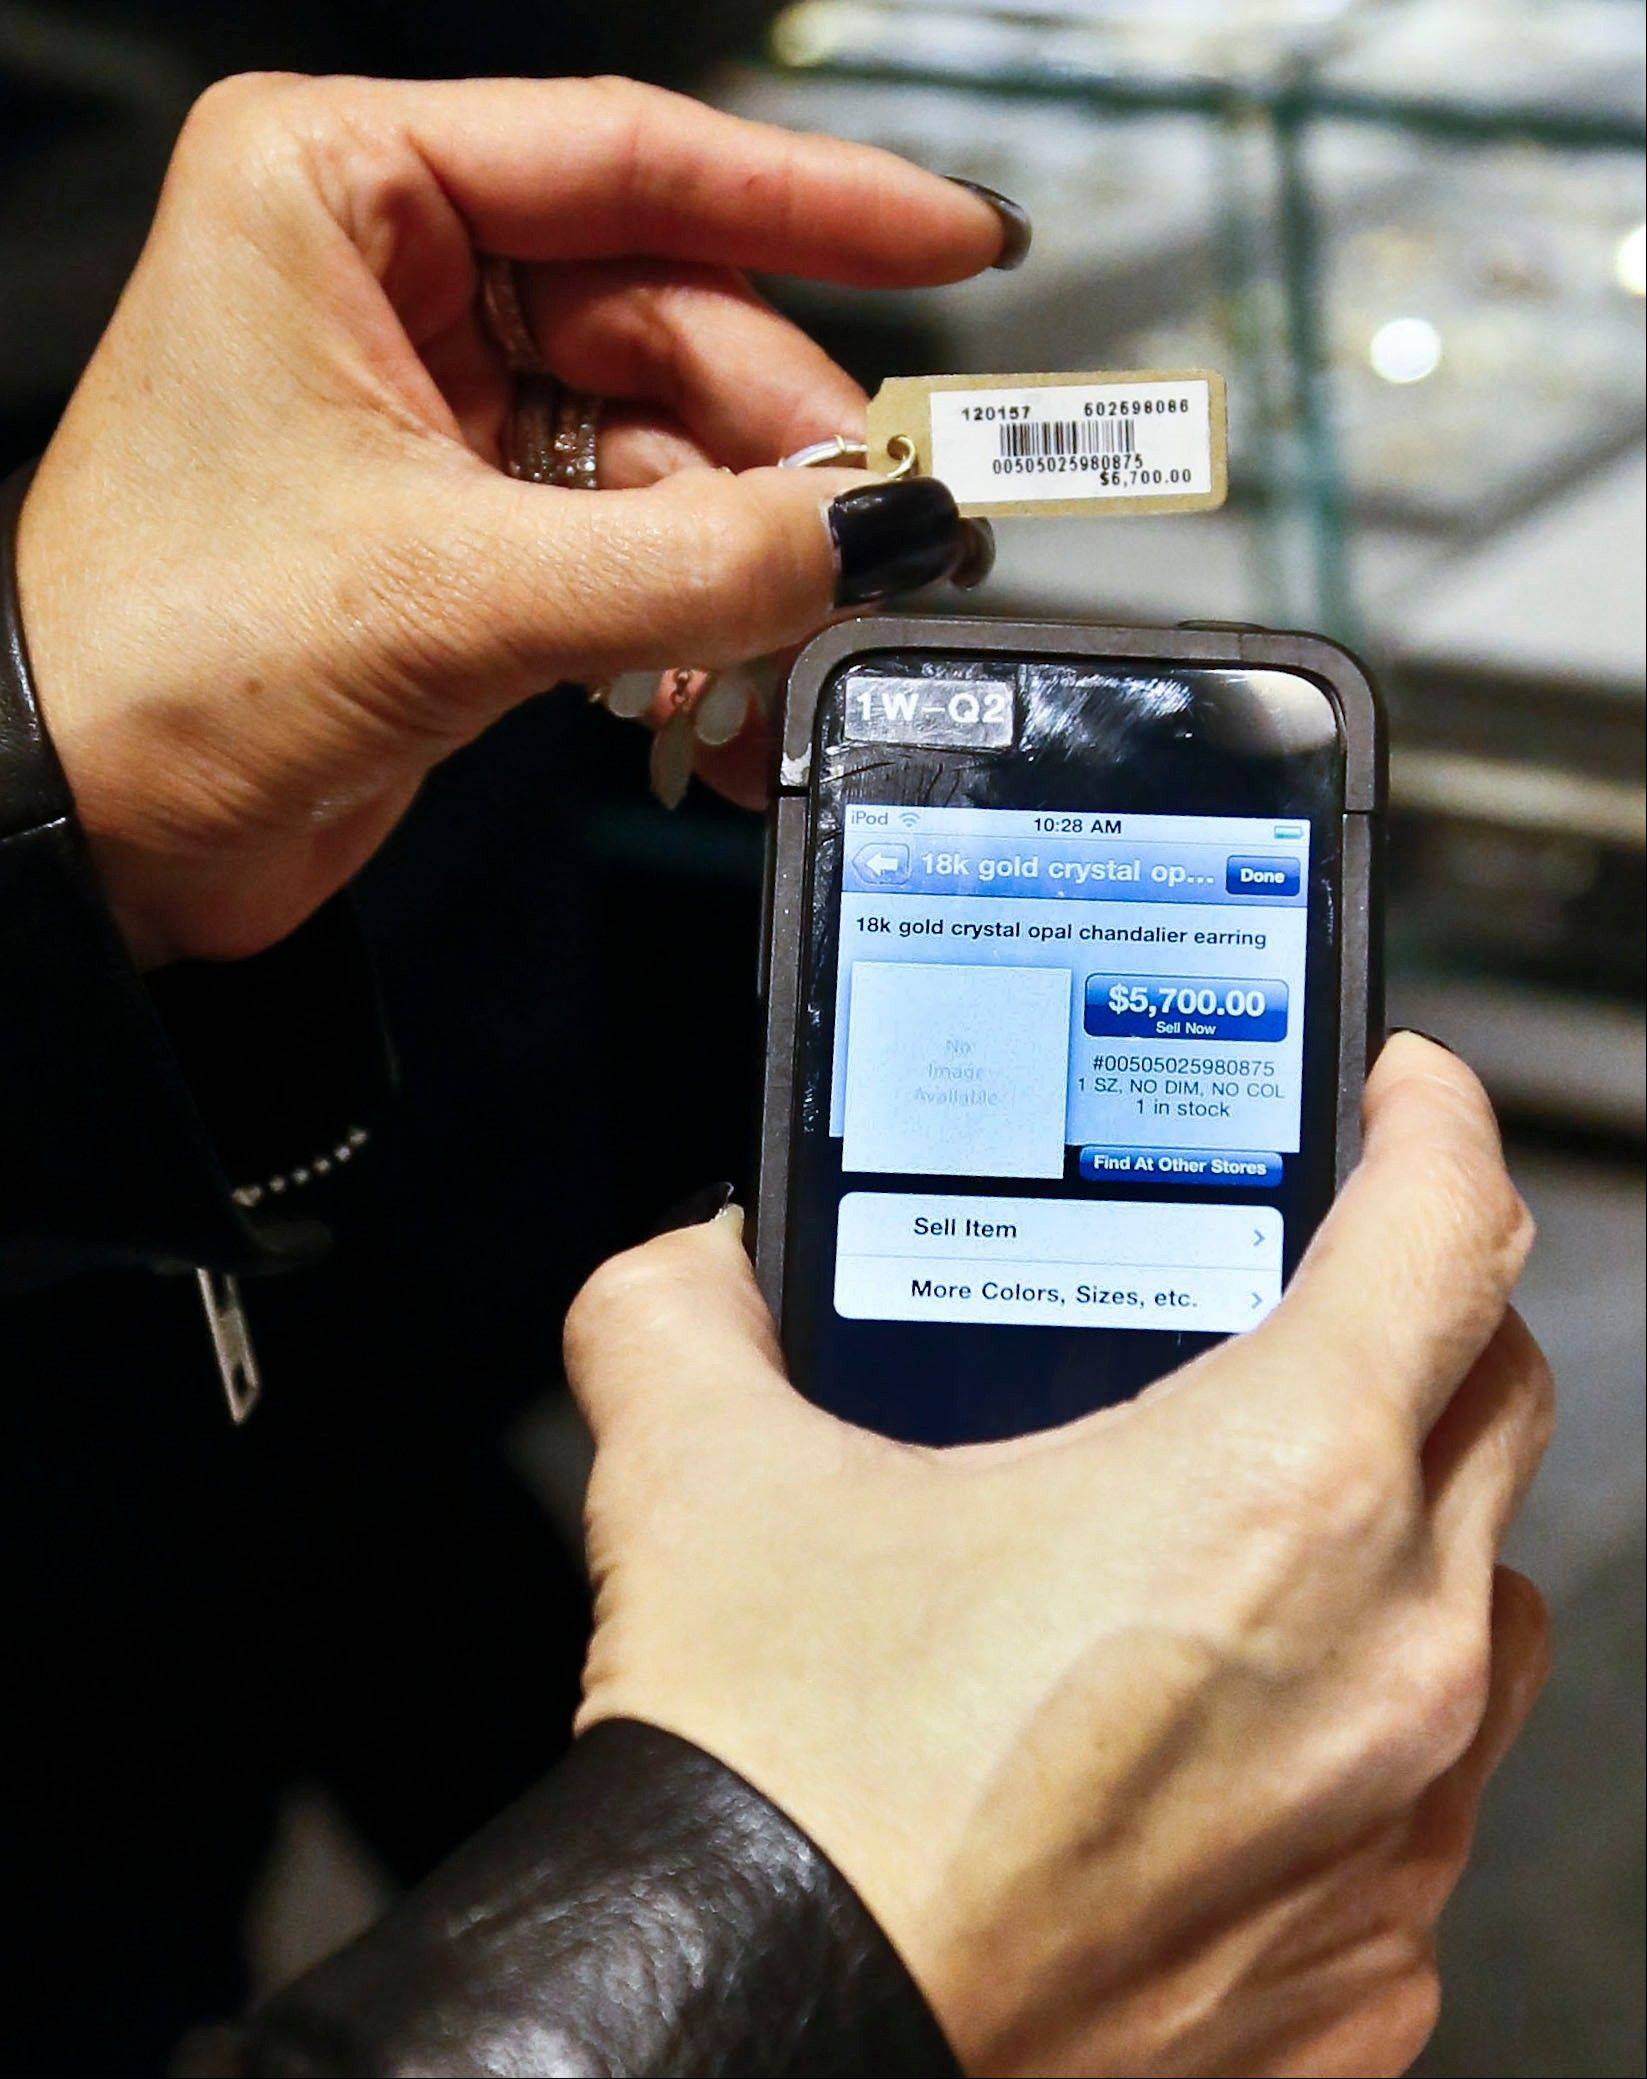 A sales staff member at Barneys New York uses an iPod Touch to help a customer make a purchase, in New York.